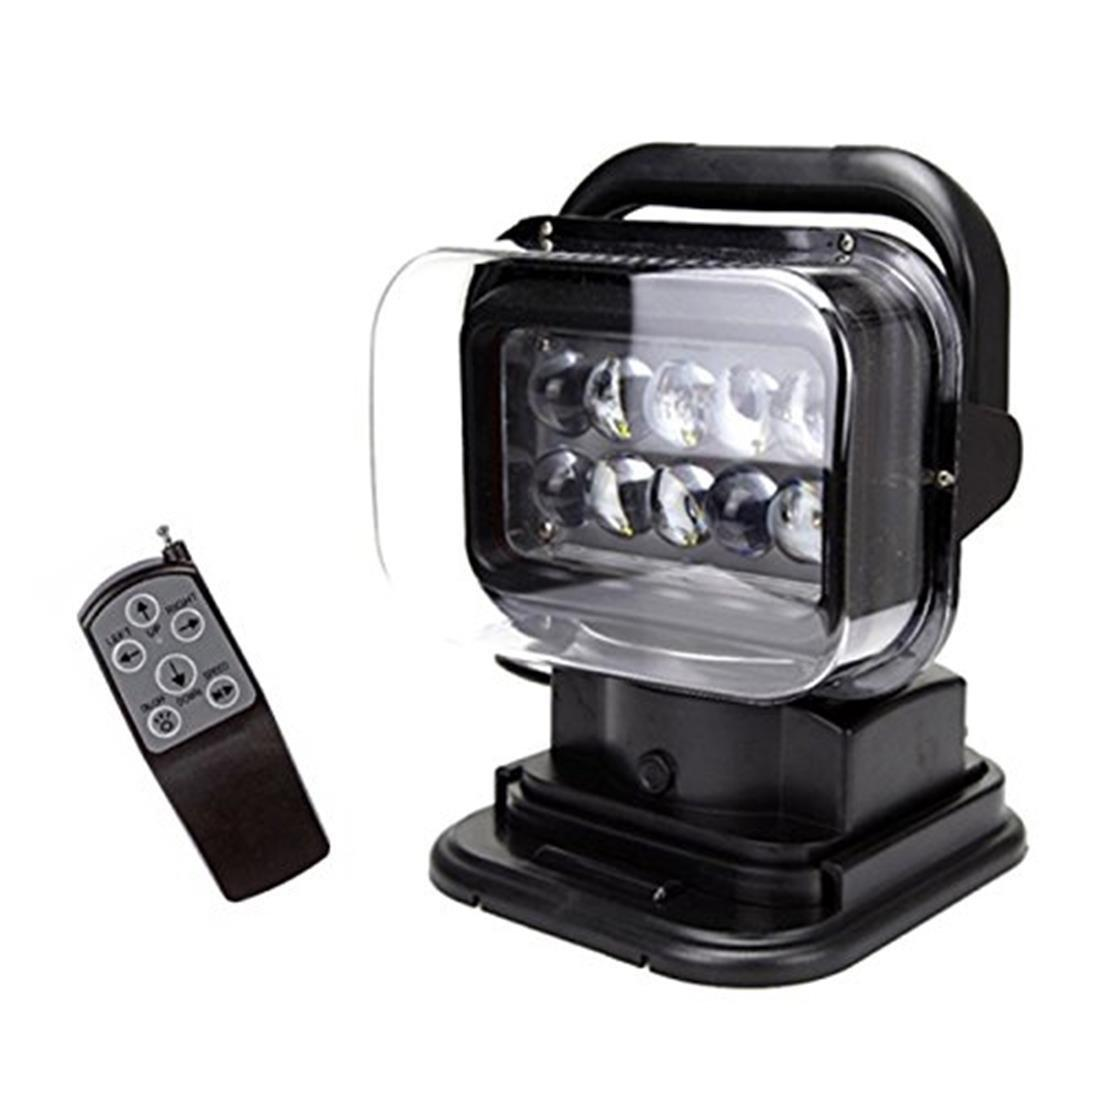 black 12v 24v 50w 360 cree led rotating remote control work light spot for suv boat home. Black Bedroom Furniture Sets. Home Design Ideas